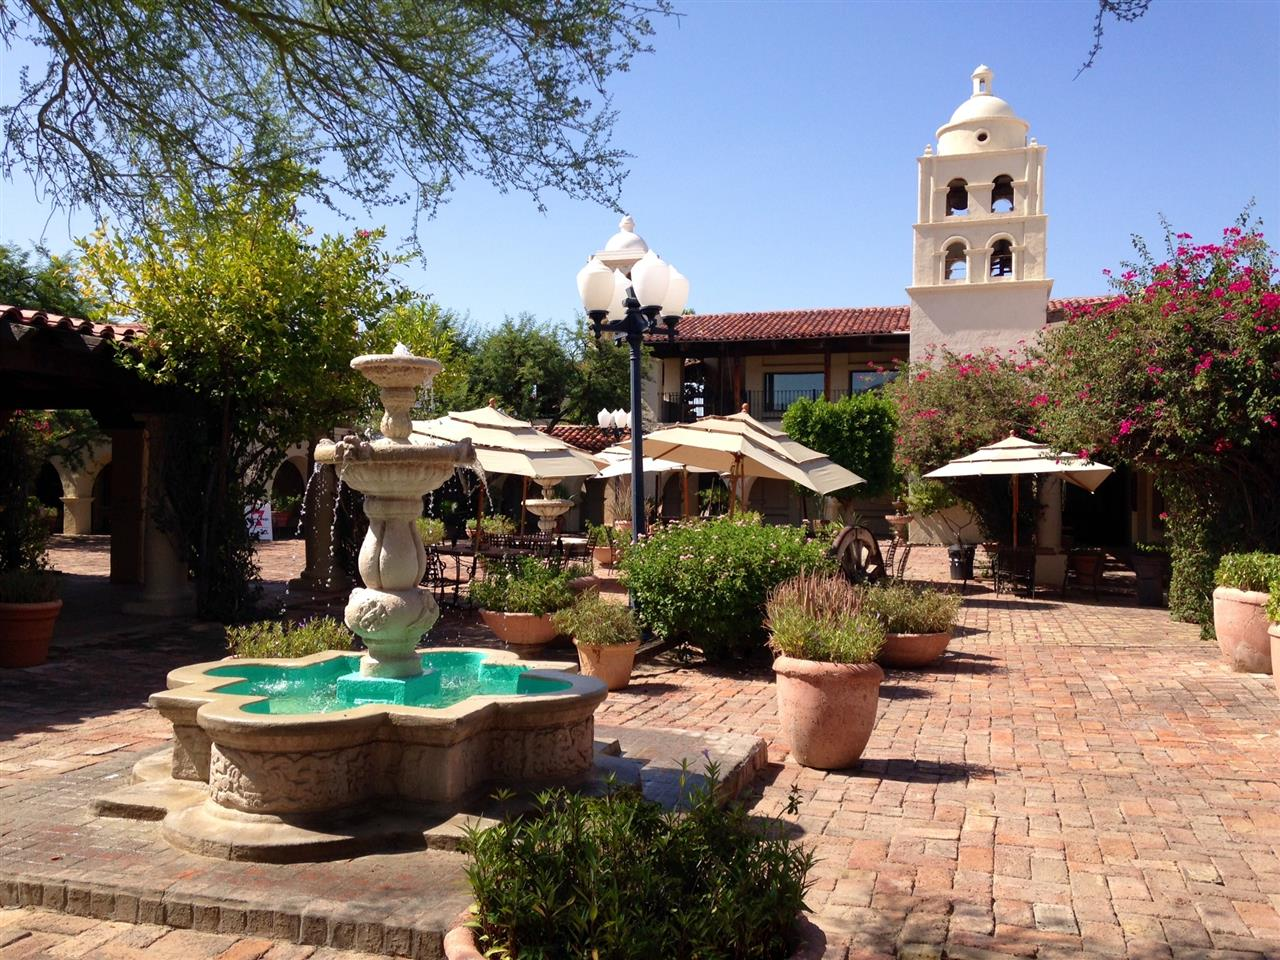 The Plaza at the General Store when you can eat outside and enjoy the day  Pinnacle Peak  Scottsdale, AZ